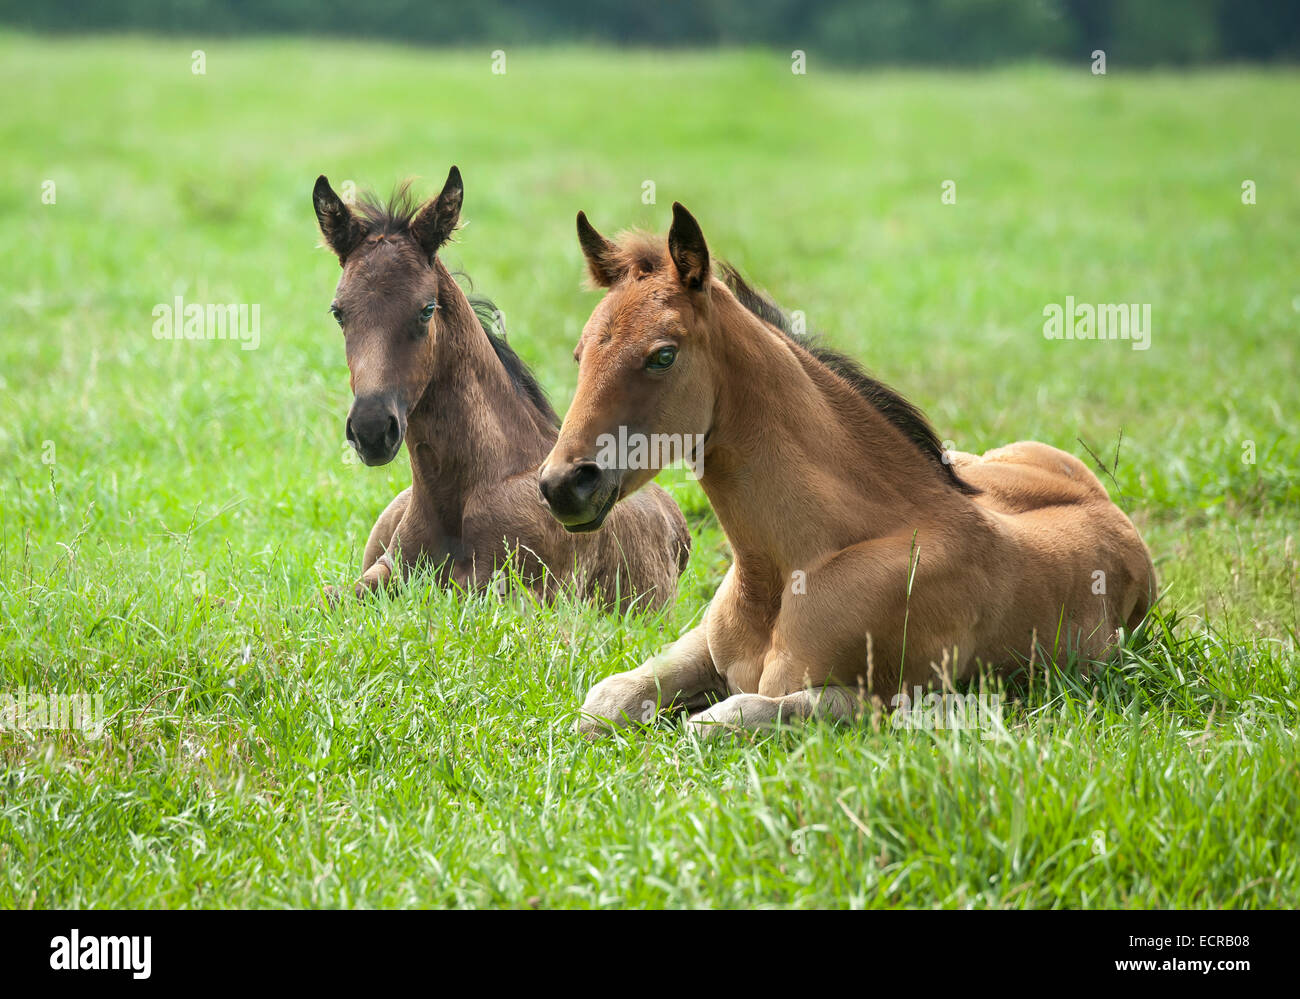 Quarter Horse foals lying in grass - Stock Image